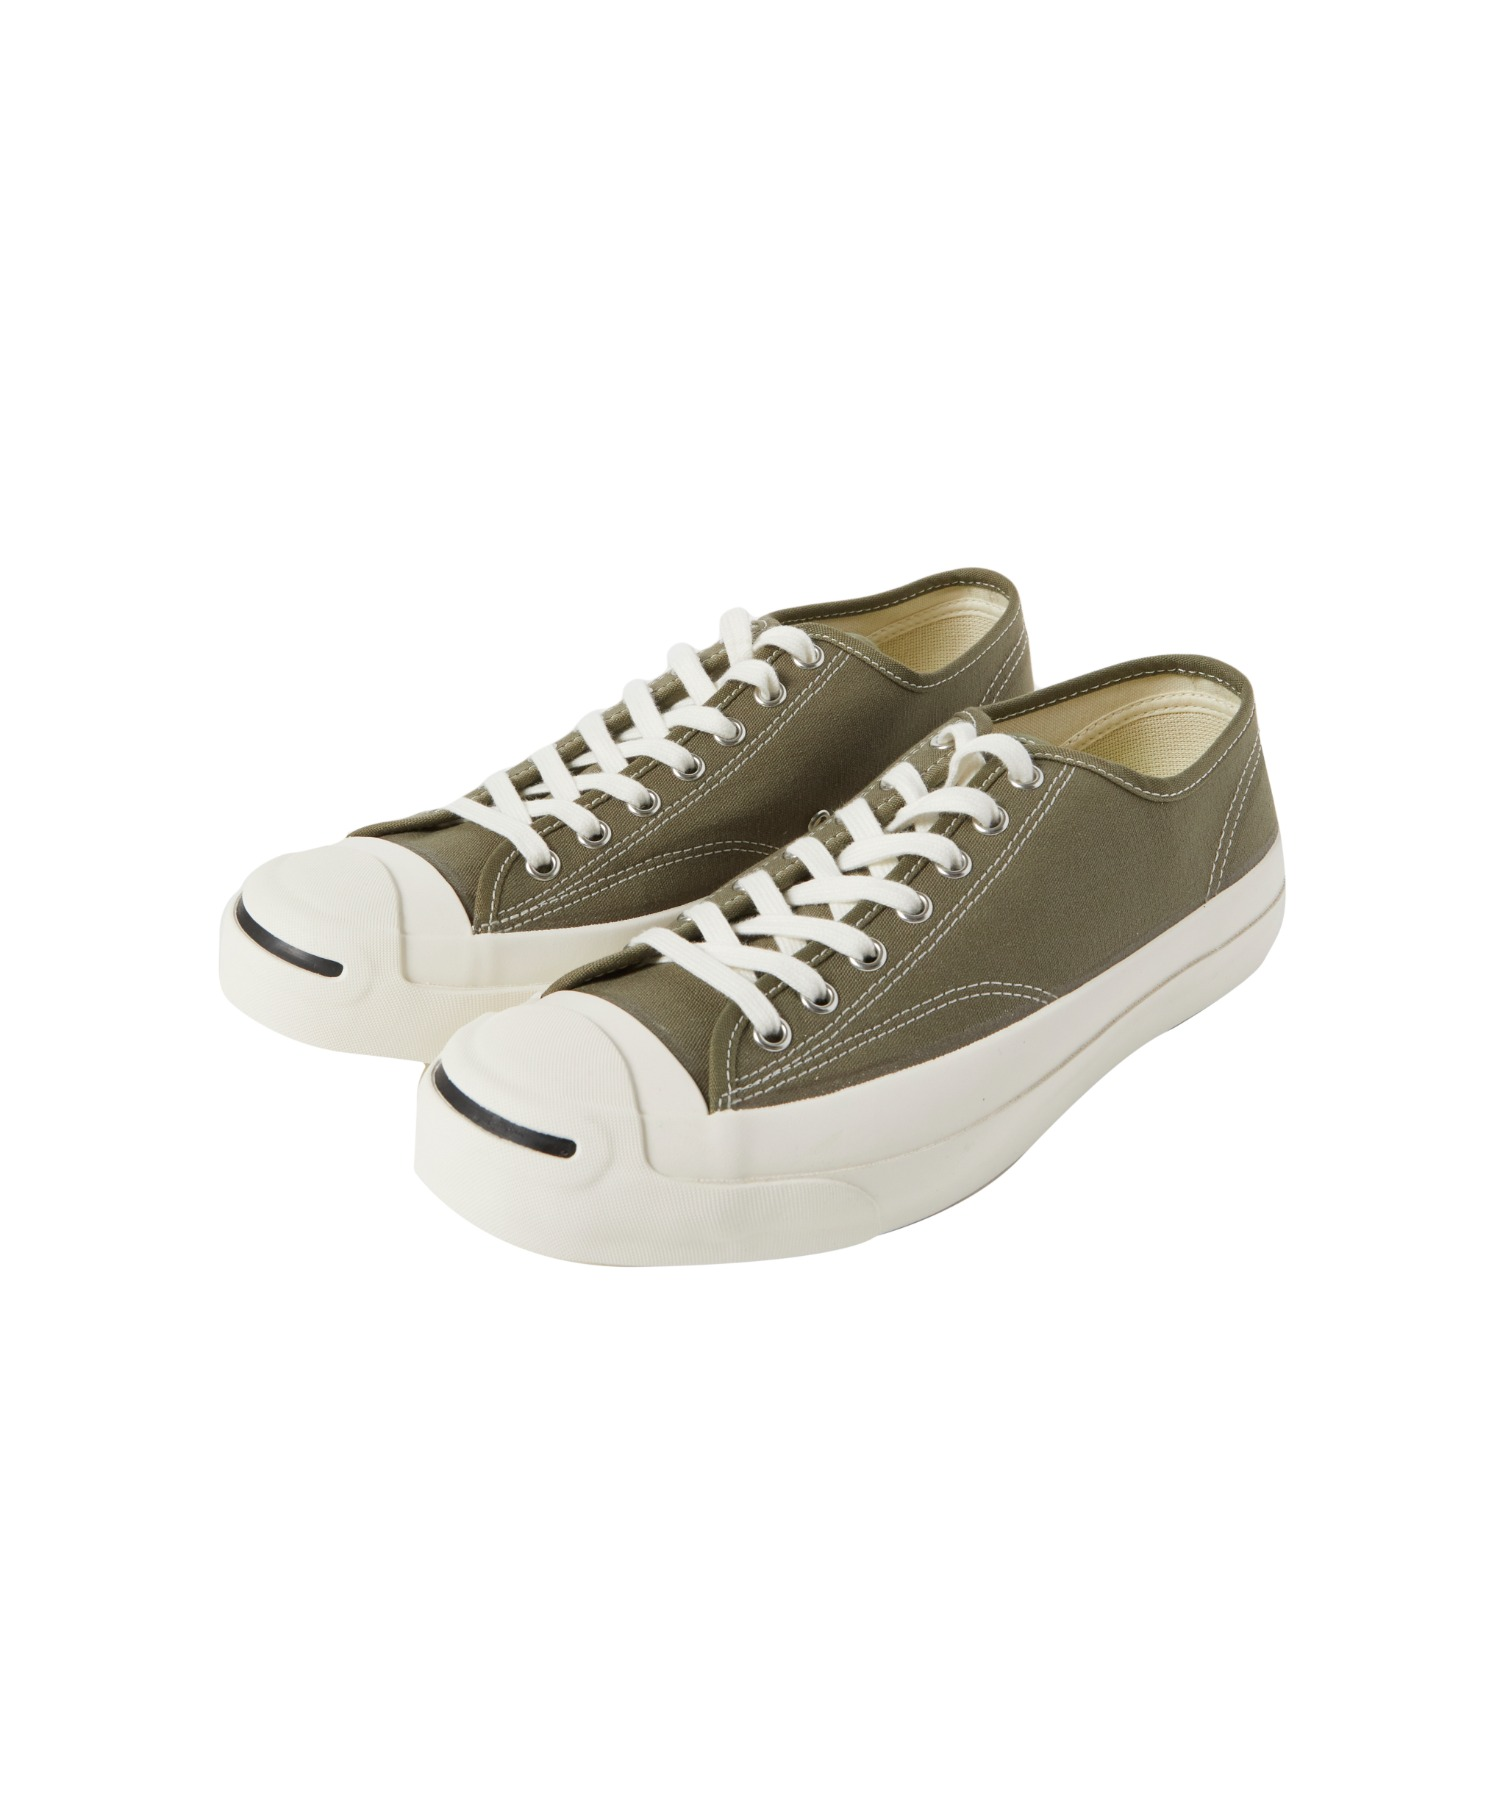 CONVERSE ADDICT【JACK PURCELL CANVAS】